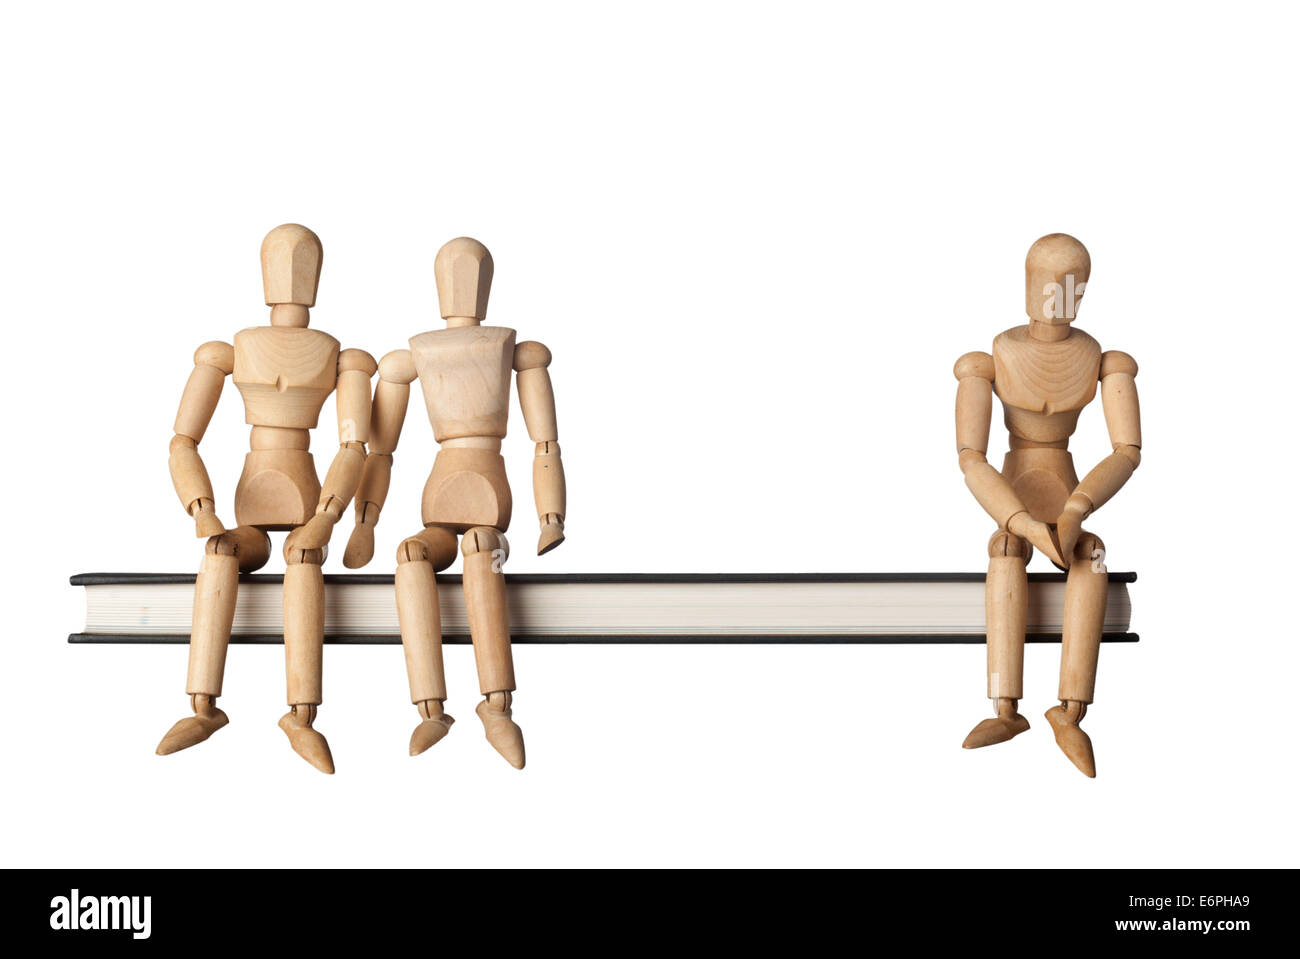 Relationship between three people depicted by three figurines isolated on white background - Stock Image